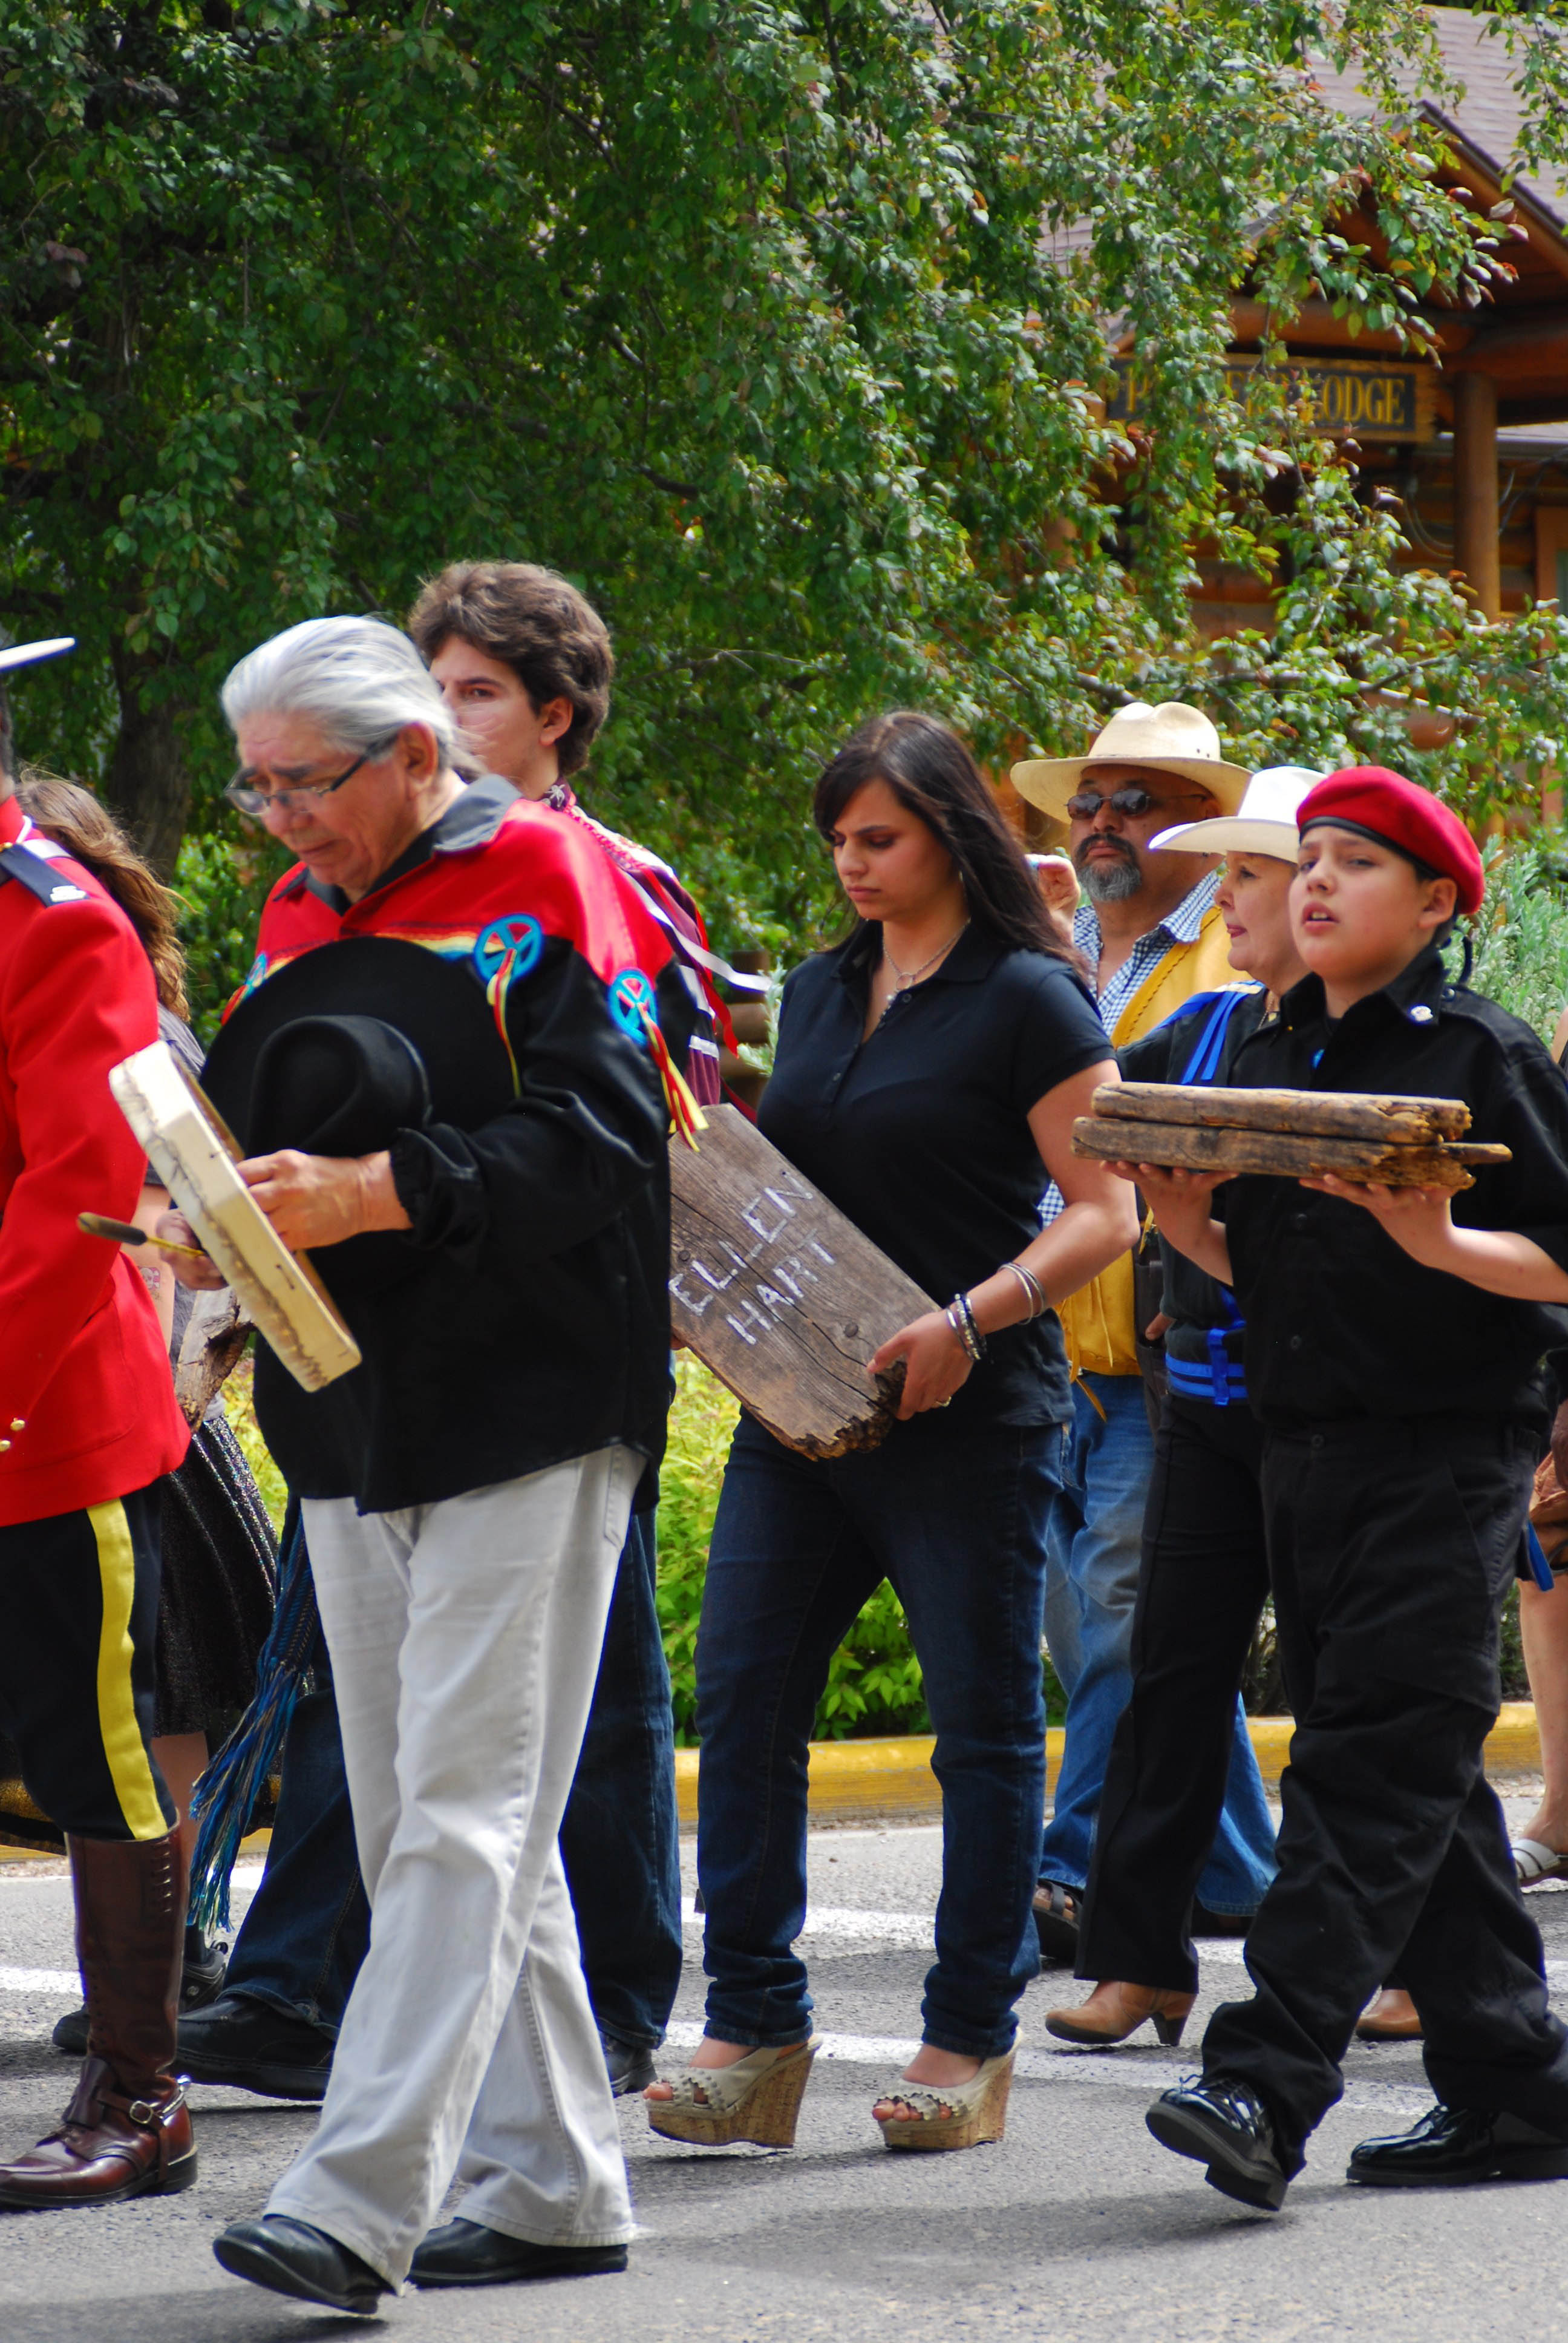 Adriana DuVal (centre) and Talon Lightning (right) carry headboards from the Red Deer Industrial School cemetery. The headboards belonged to students who had attended the school from 1893 to 1919. They will be on display at the Red Deer Musuem + Art Gallery. (Red Deer Express)